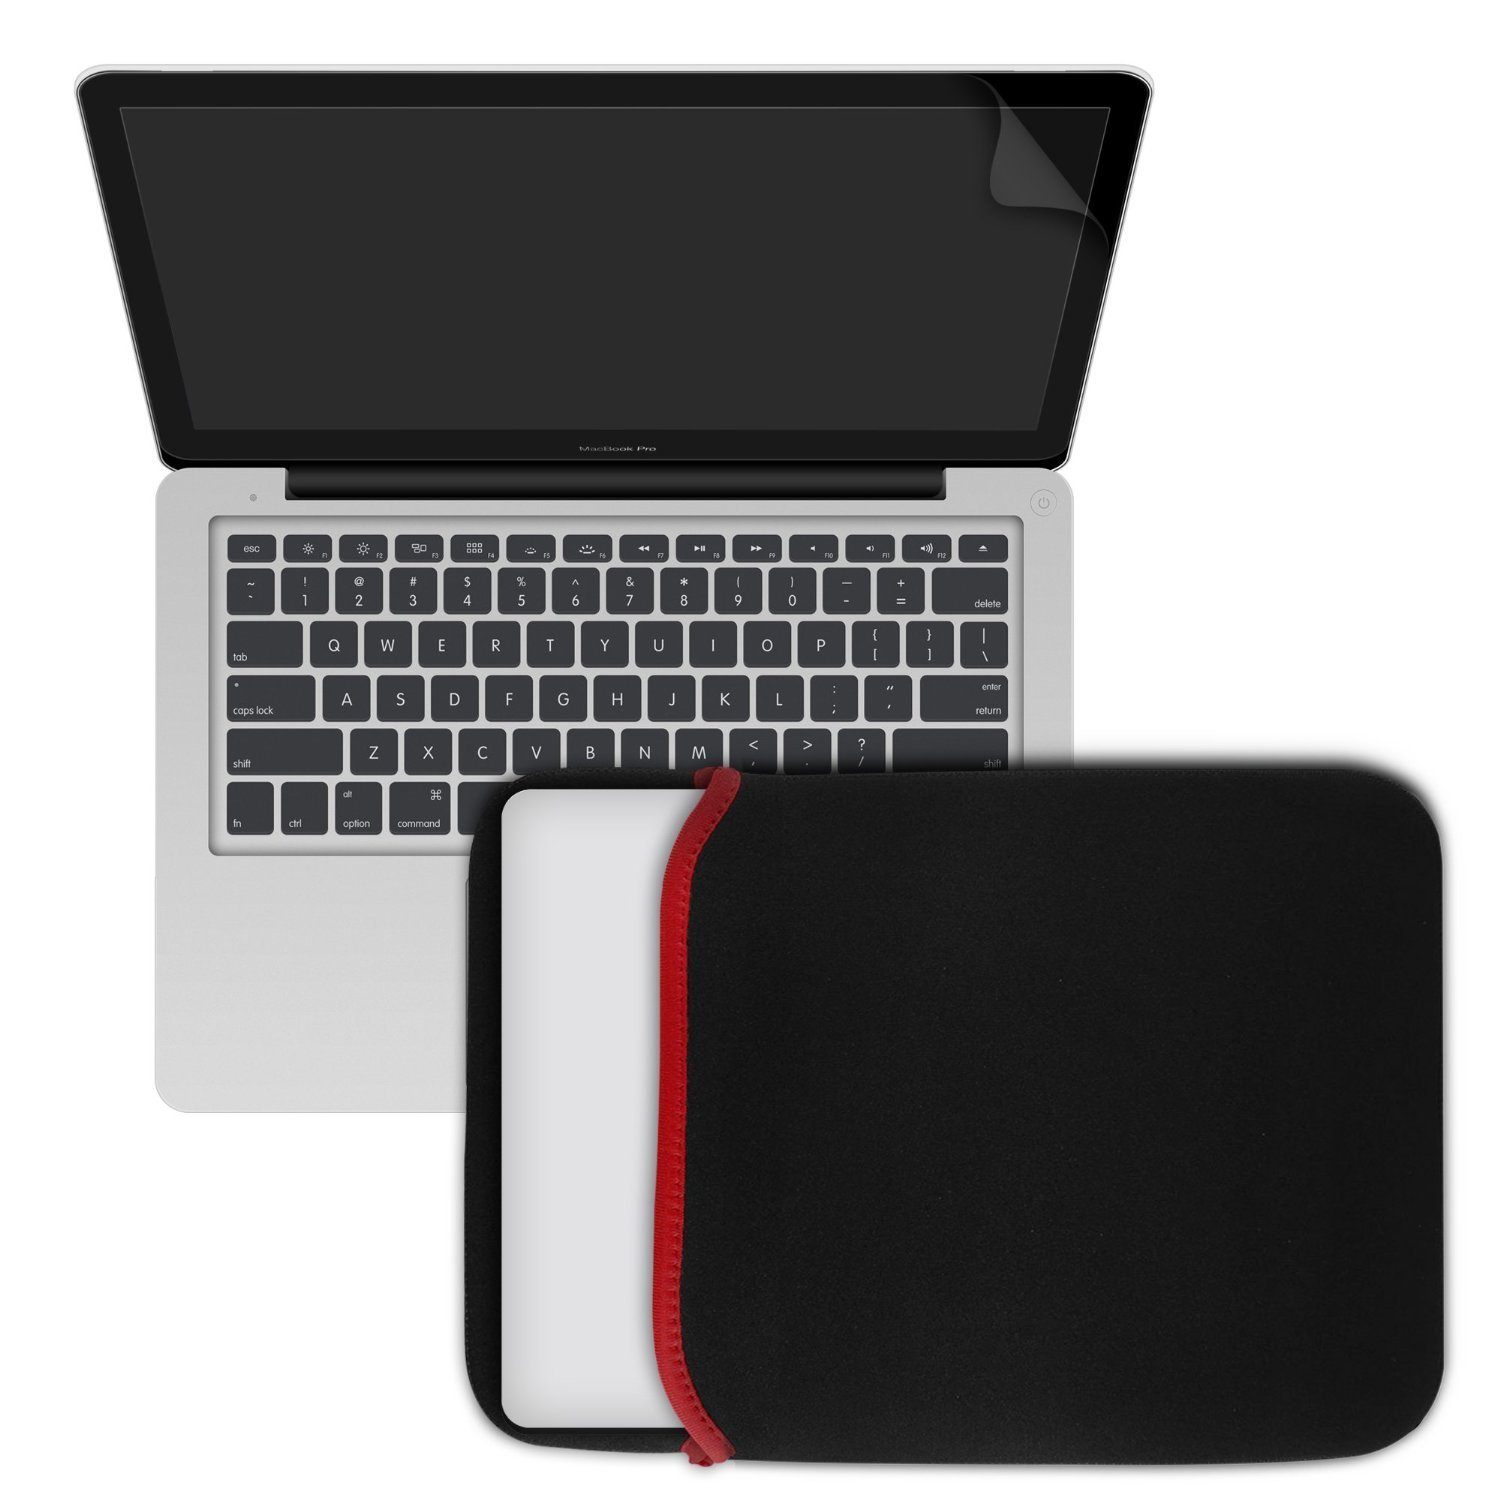 """MacBook-Pro-13, RiverPanda Matte Rubberized Hard Snap-On Case Cover for Apple MacBook Pro 13"""" with Keyboard Skin, Screen Protector & Soft Sleeve Fits Model A1278 - Clear"""